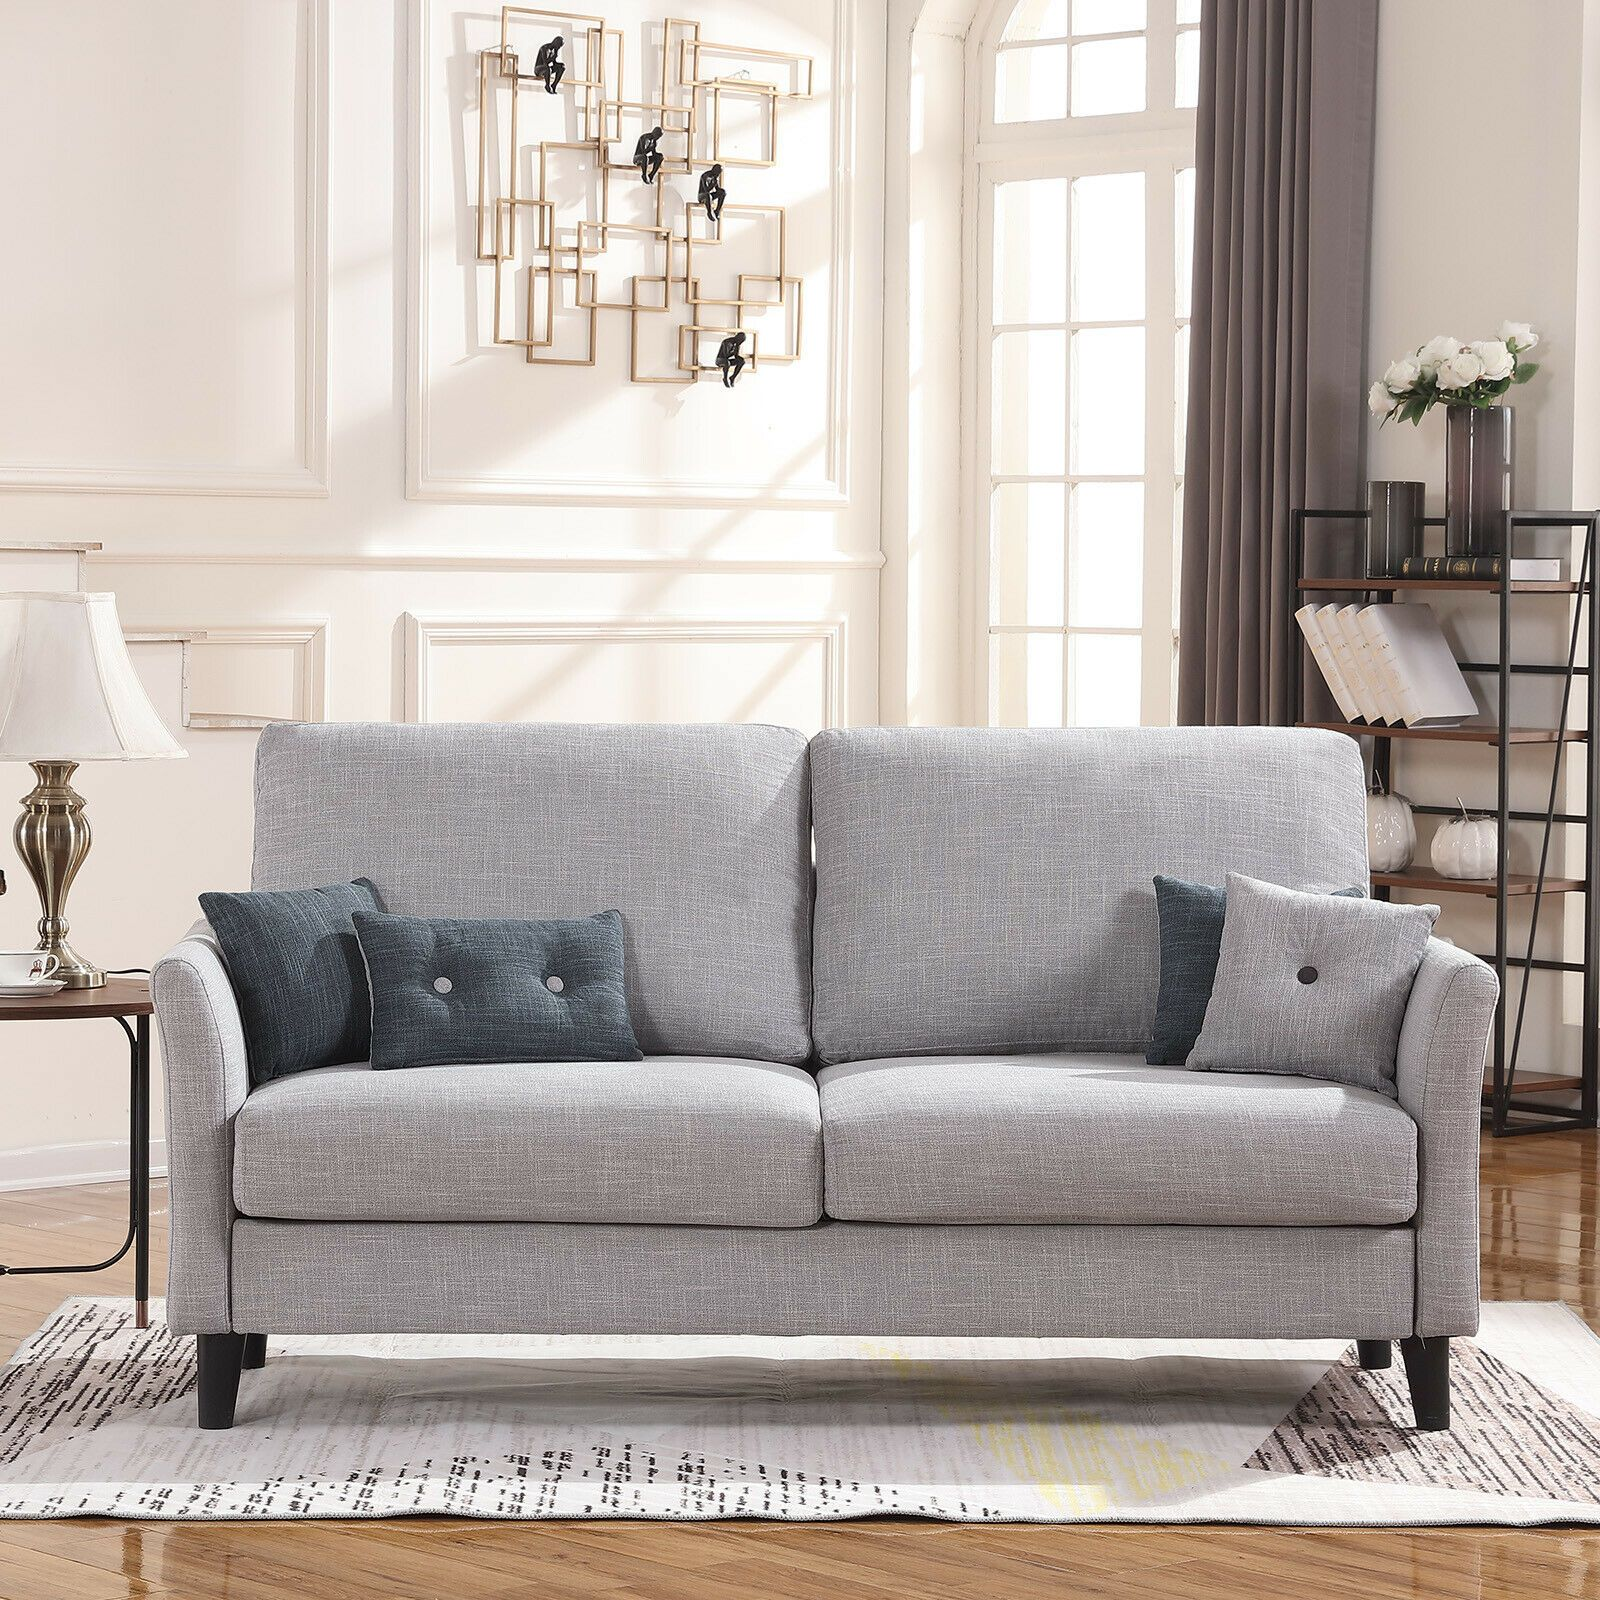 Modern Upholstered Sofa Fabric Contemporary Couch In Living Room